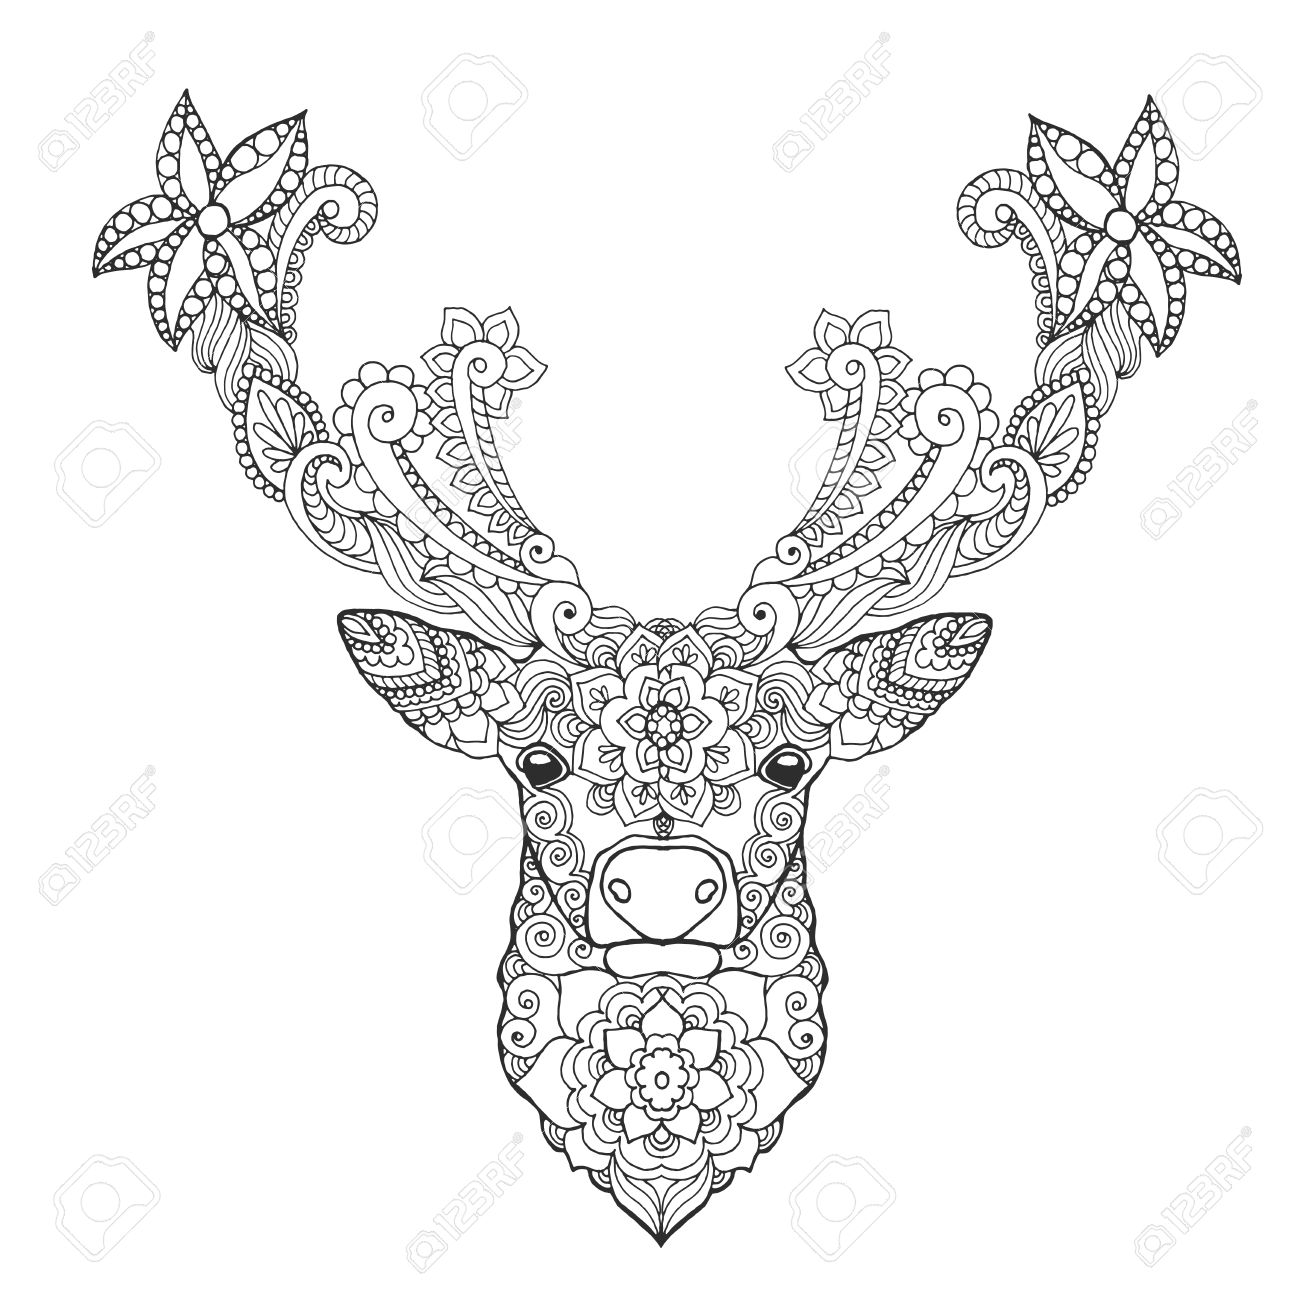 Deer Head Black White Hand Drawn Doodle Animal Ethnic Patterned Vector Illustration African